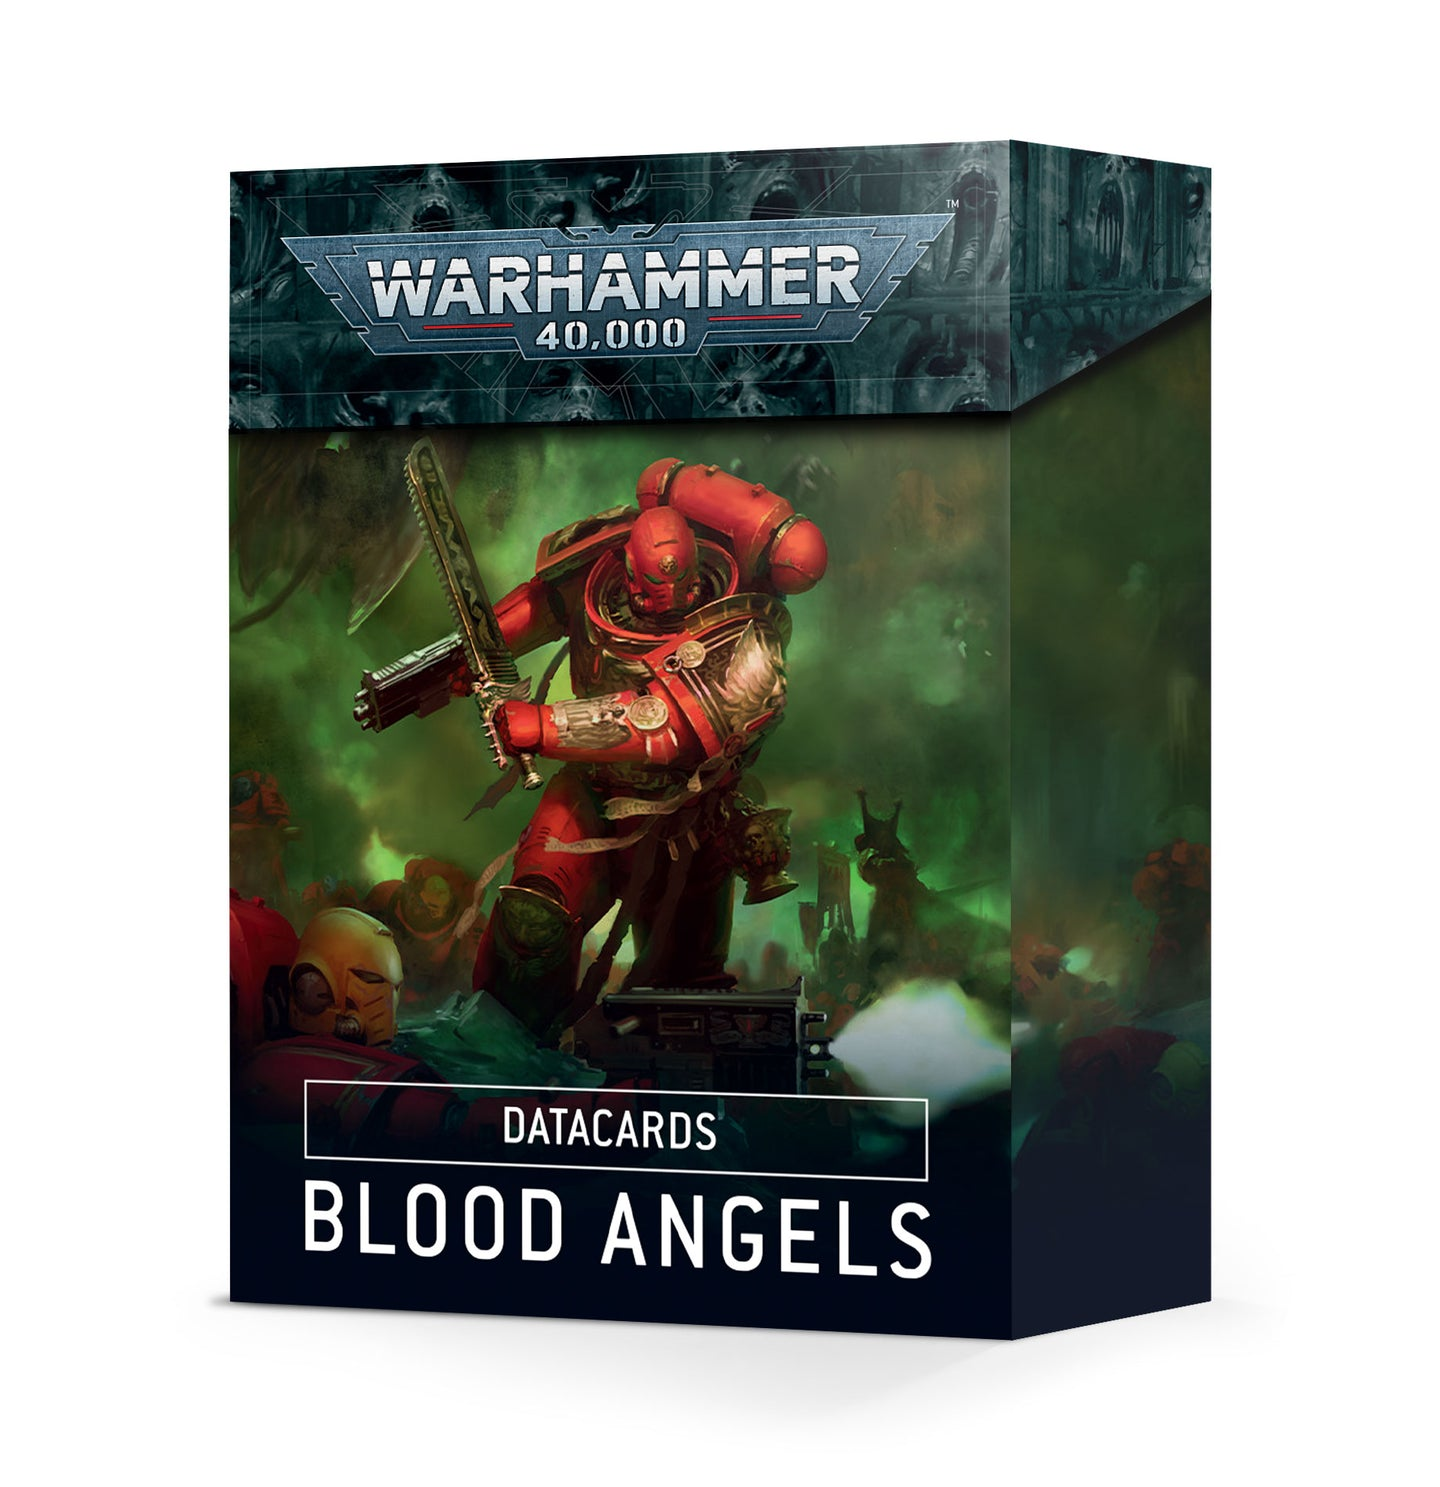 DATACARDS: BLOOD ANGELS 9TH EDITION